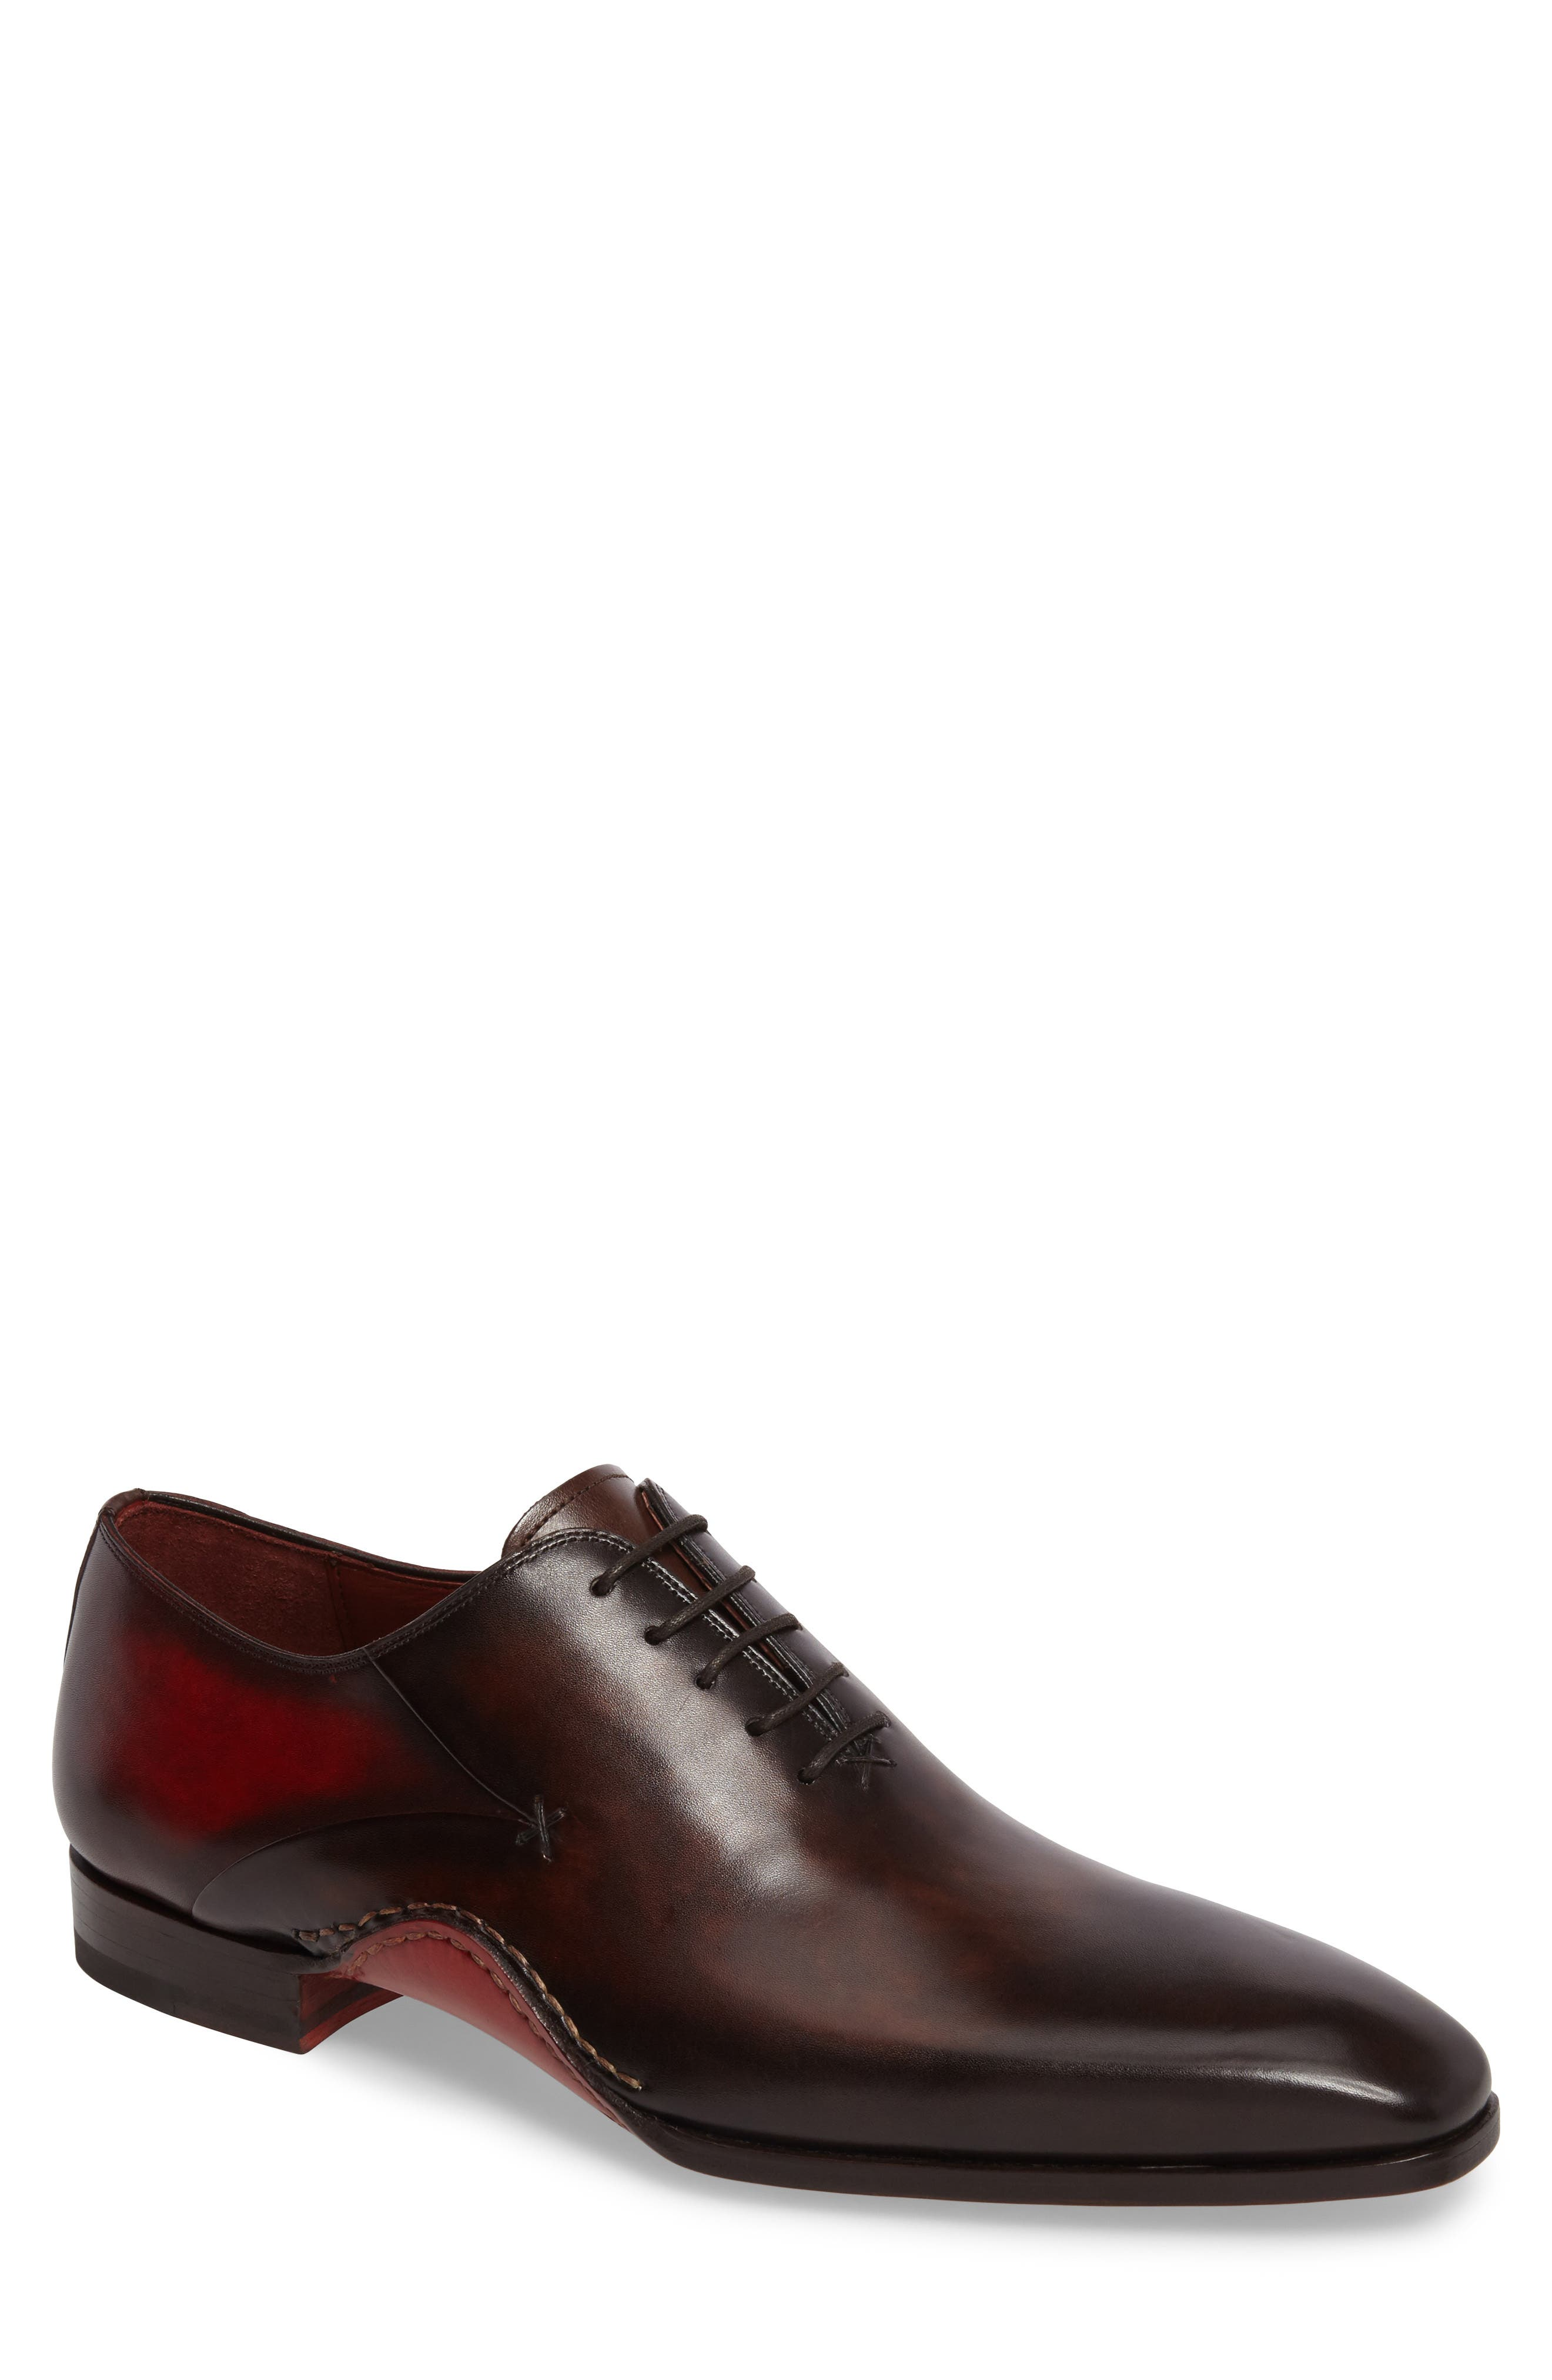 Cantabria Plain Toe Oxford,                             Main thumbnail 1, color,                             BROWN/ RED LEATHER